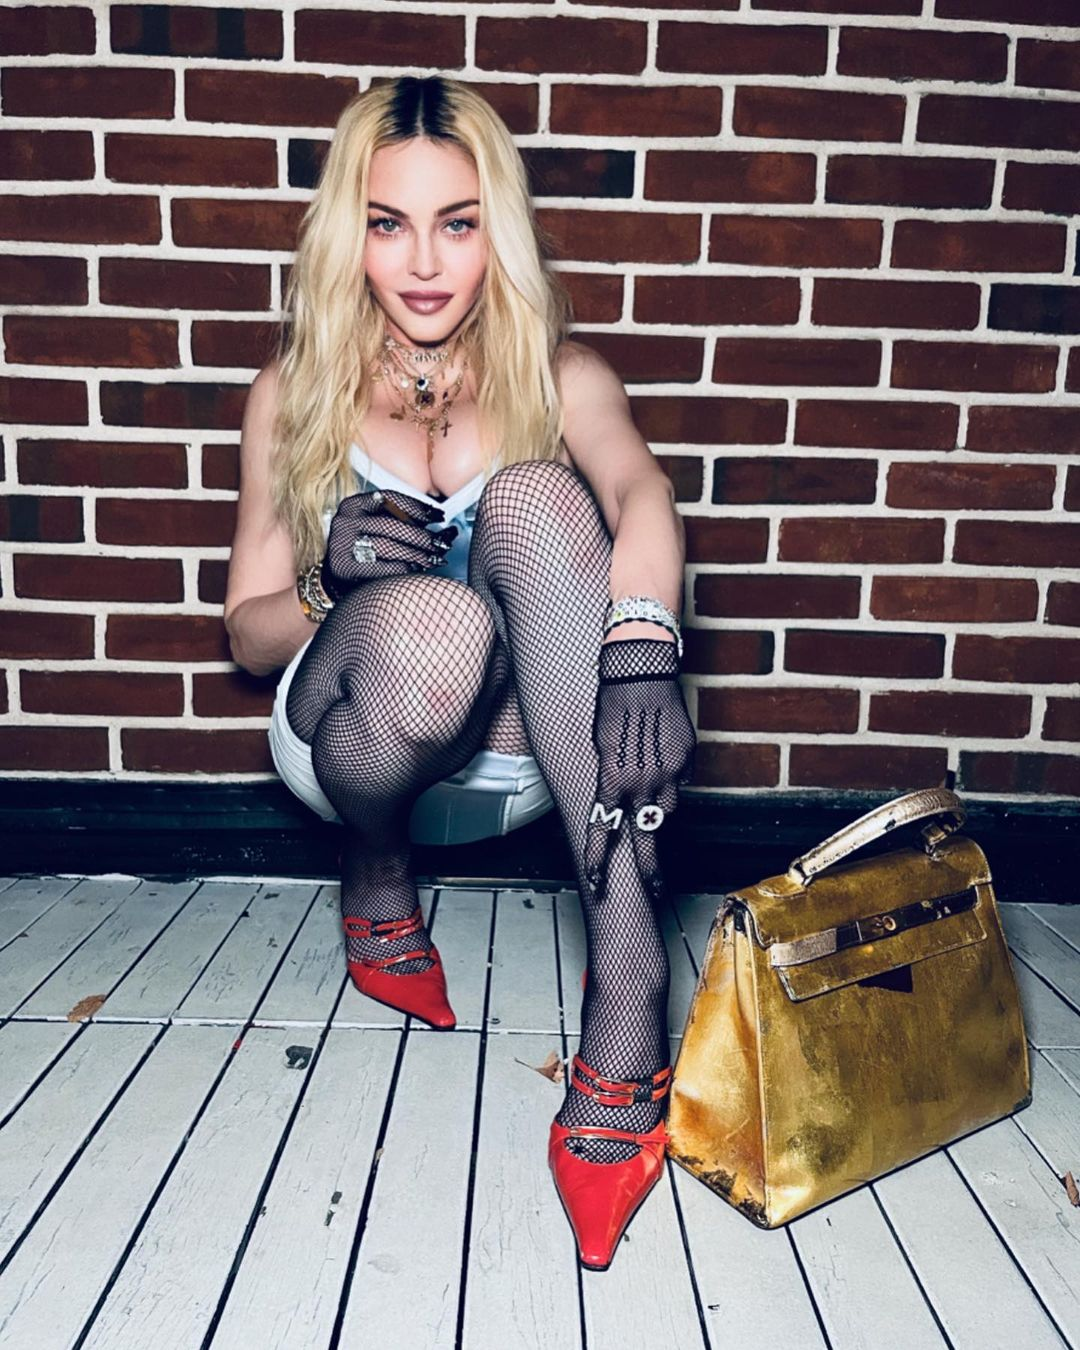 Madonna is Smoking on The Fire Escape!.jpg